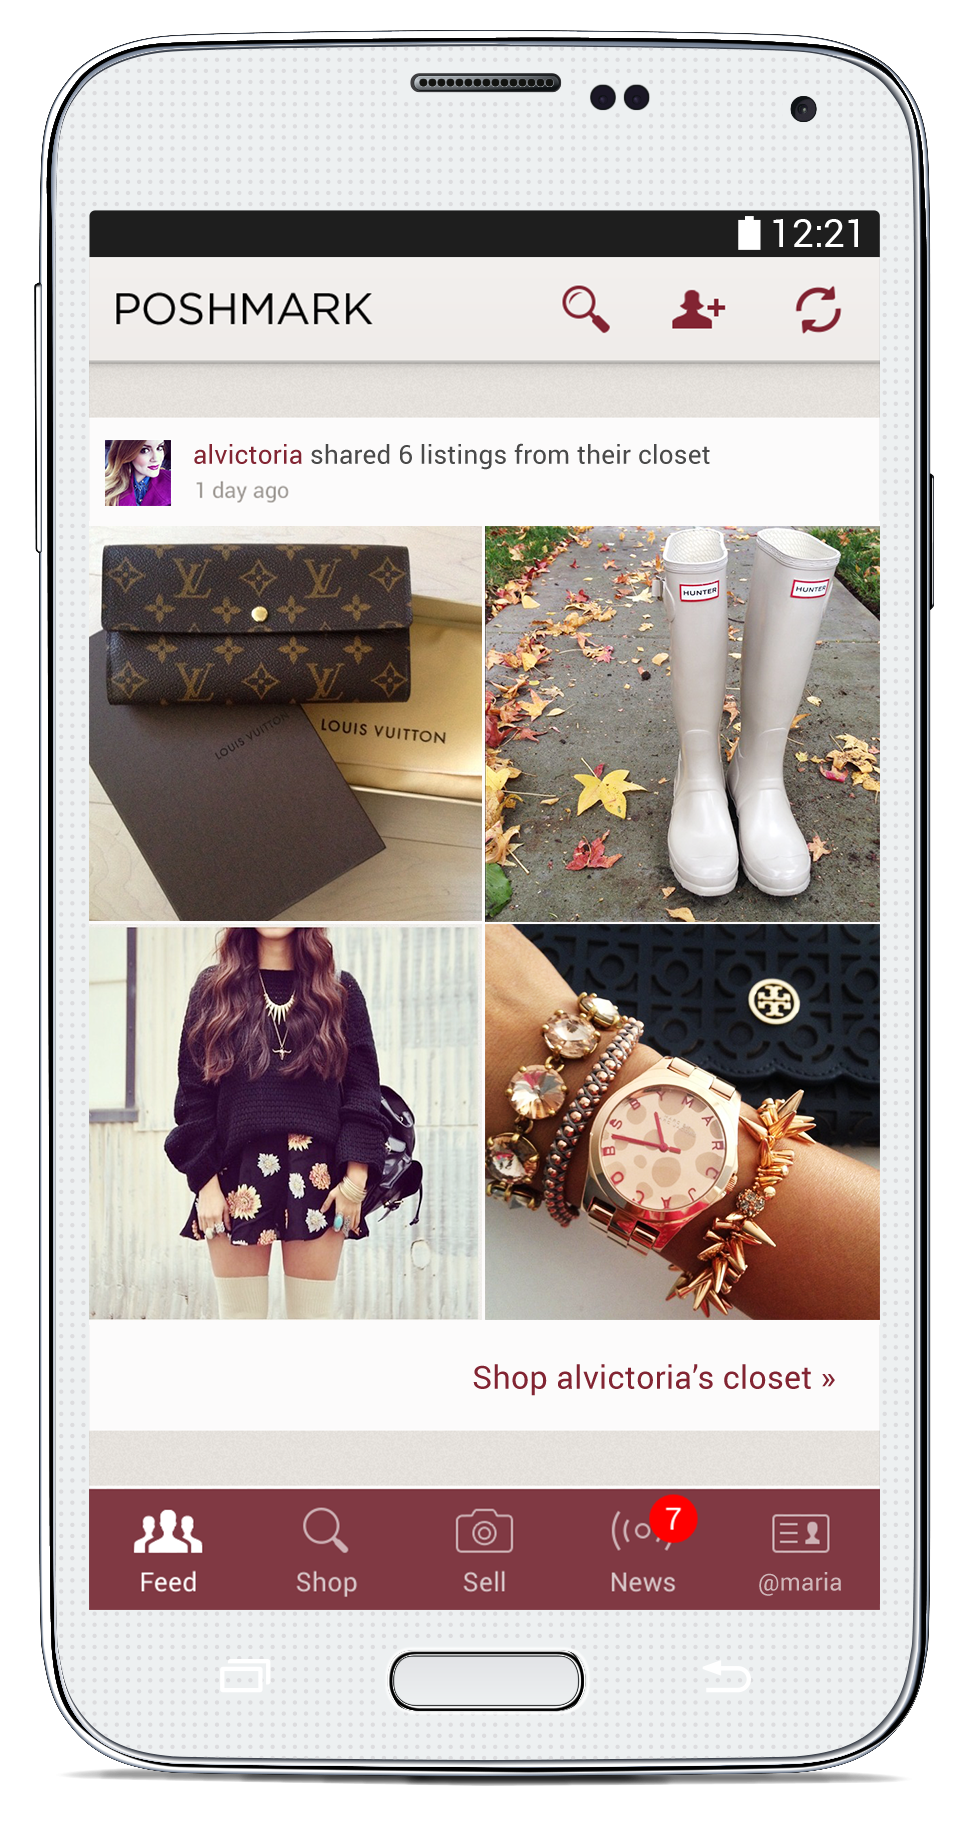 A screengrab of inside the Poshmark app. Poshmark lets you follow other user's closets and shop items for sale, but it's really the community and human connection that keep people coming back, says Tracy Sun.